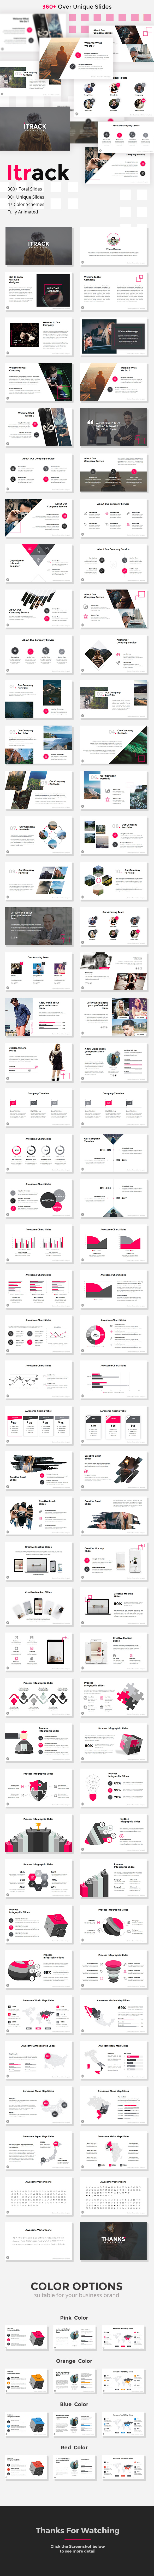 Itrack - StartUp Pitch Deck Keynote Templates - Keynote Templates Presentation Templates